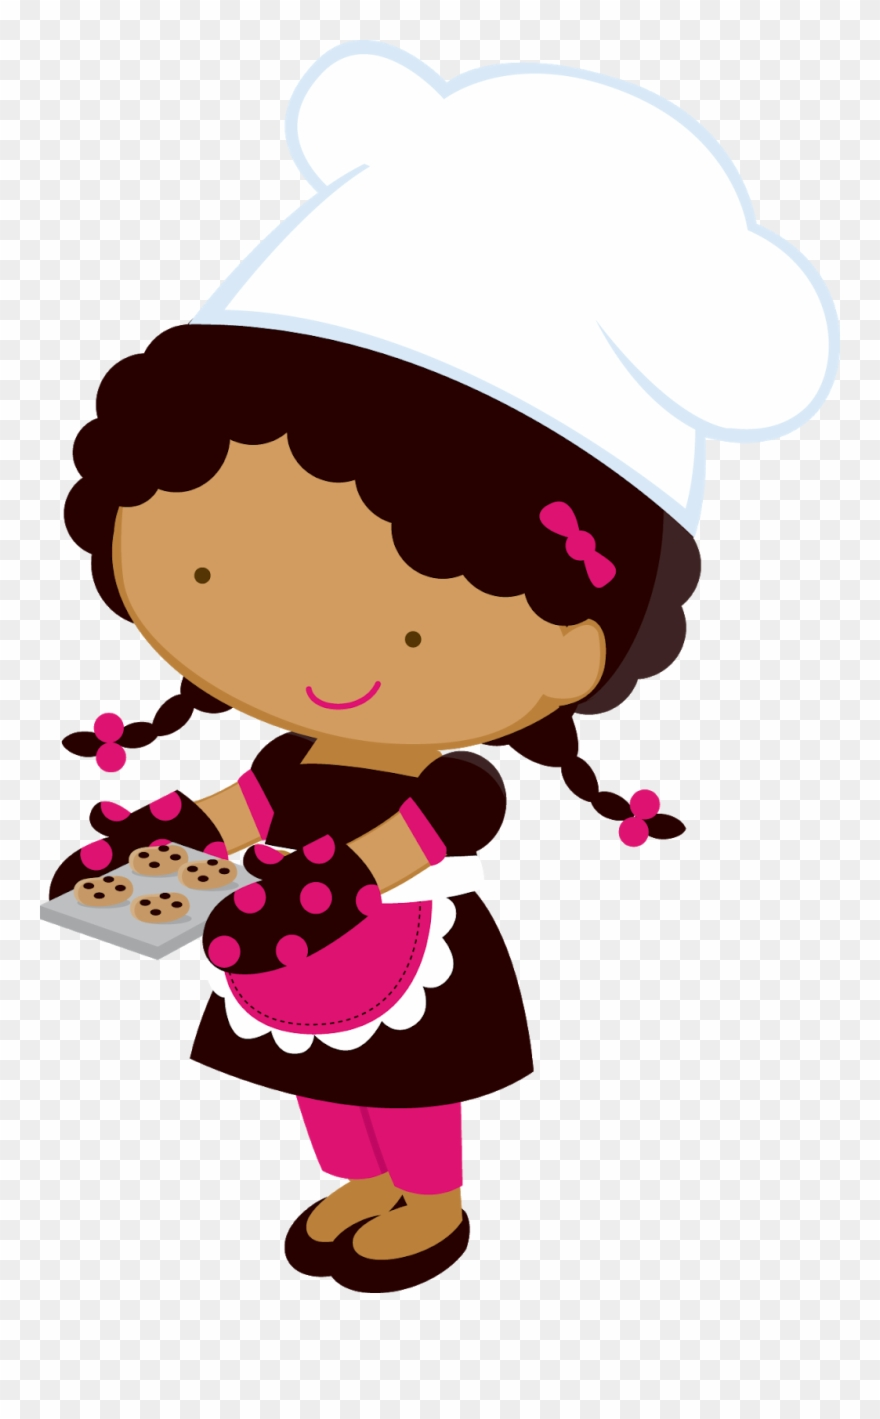 Child chef clipart svg transparent stock Image Royalty Free Collection Of Girl Chef Png High - Little Chef ... svg transparent stock